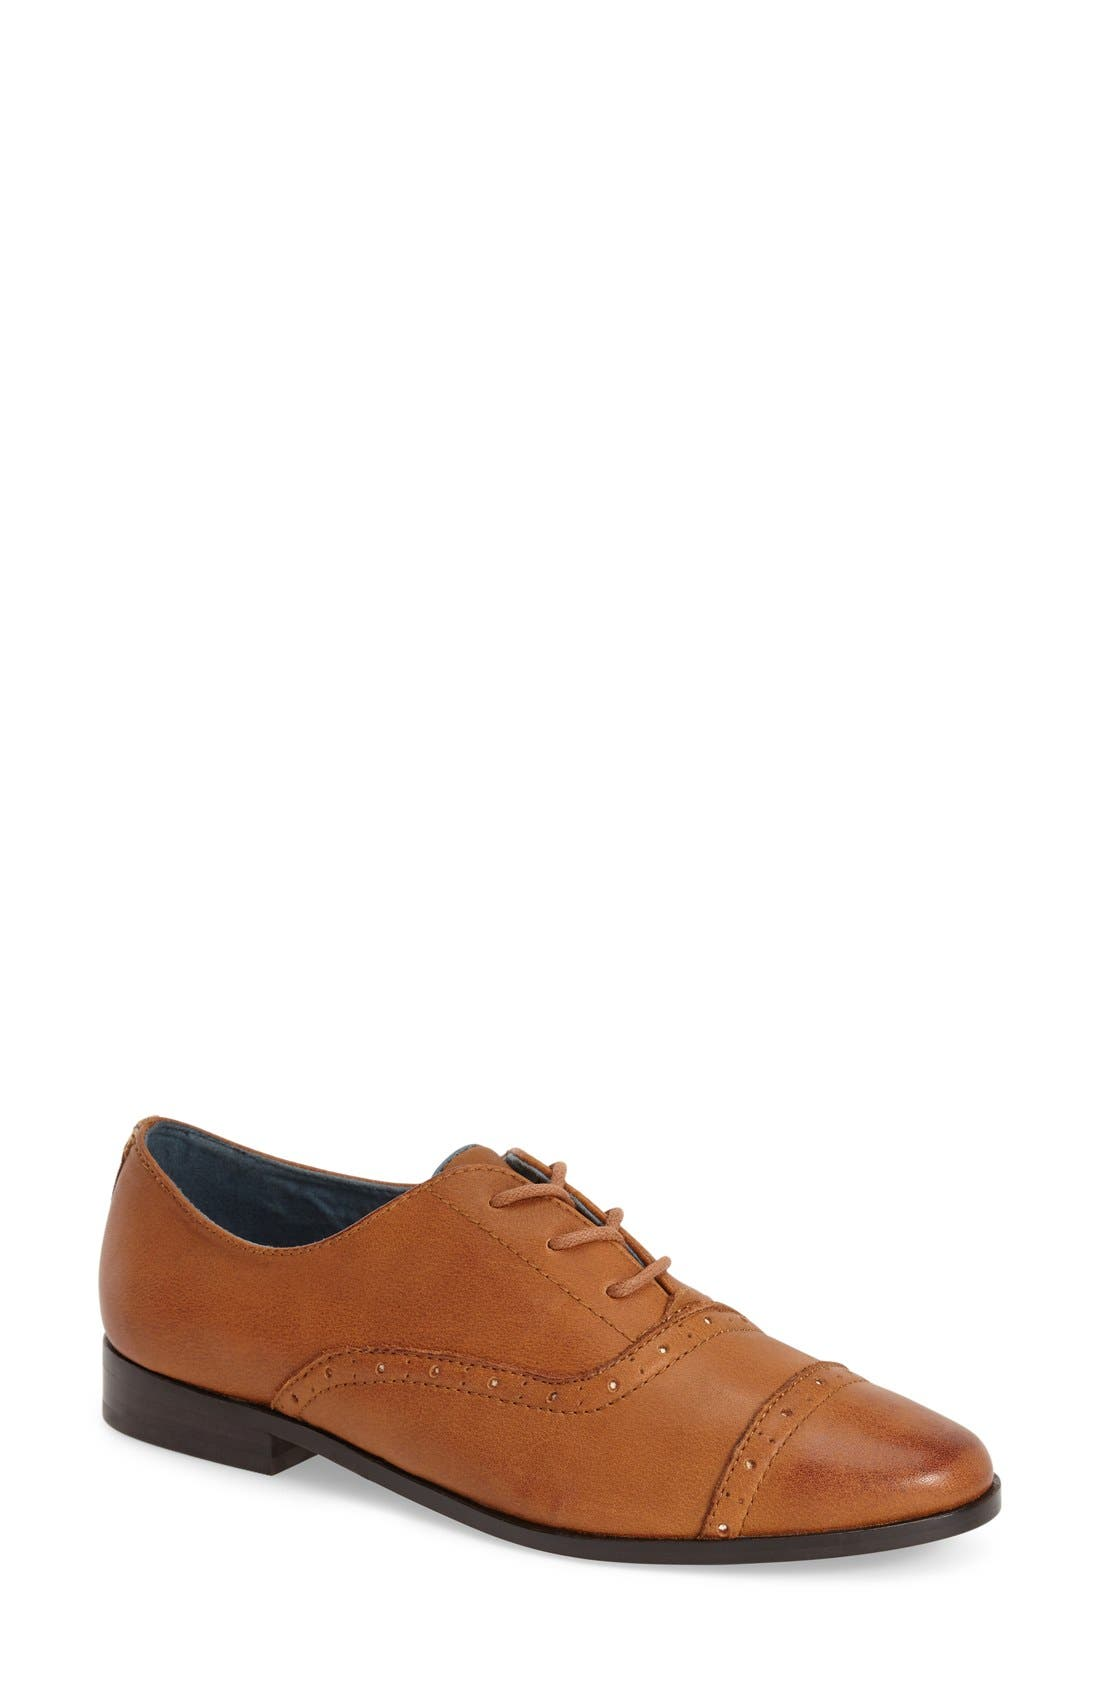 Alternate Image 1 Selected - TOMS 'Brogue' Oxford (Women)